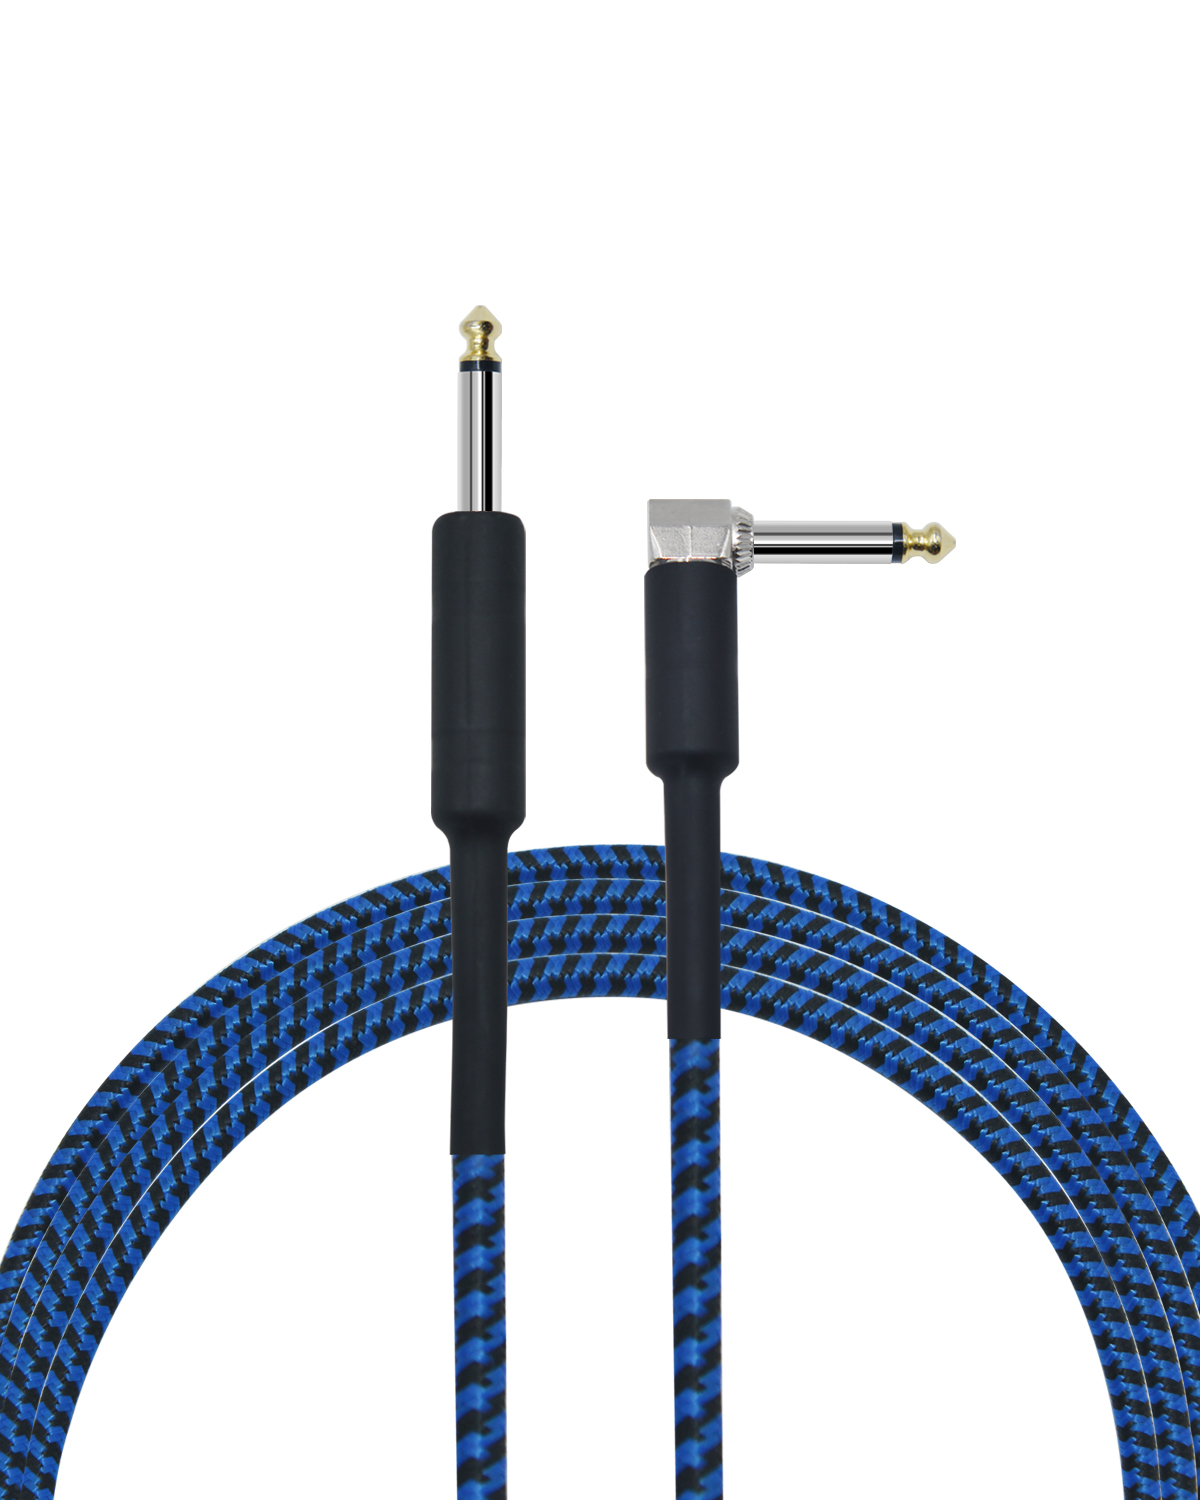 10 feet professional guitar instrument cable with a lively blue tweed coat Angle 1/4 Inch TS to Straight 1/4 Inch TS